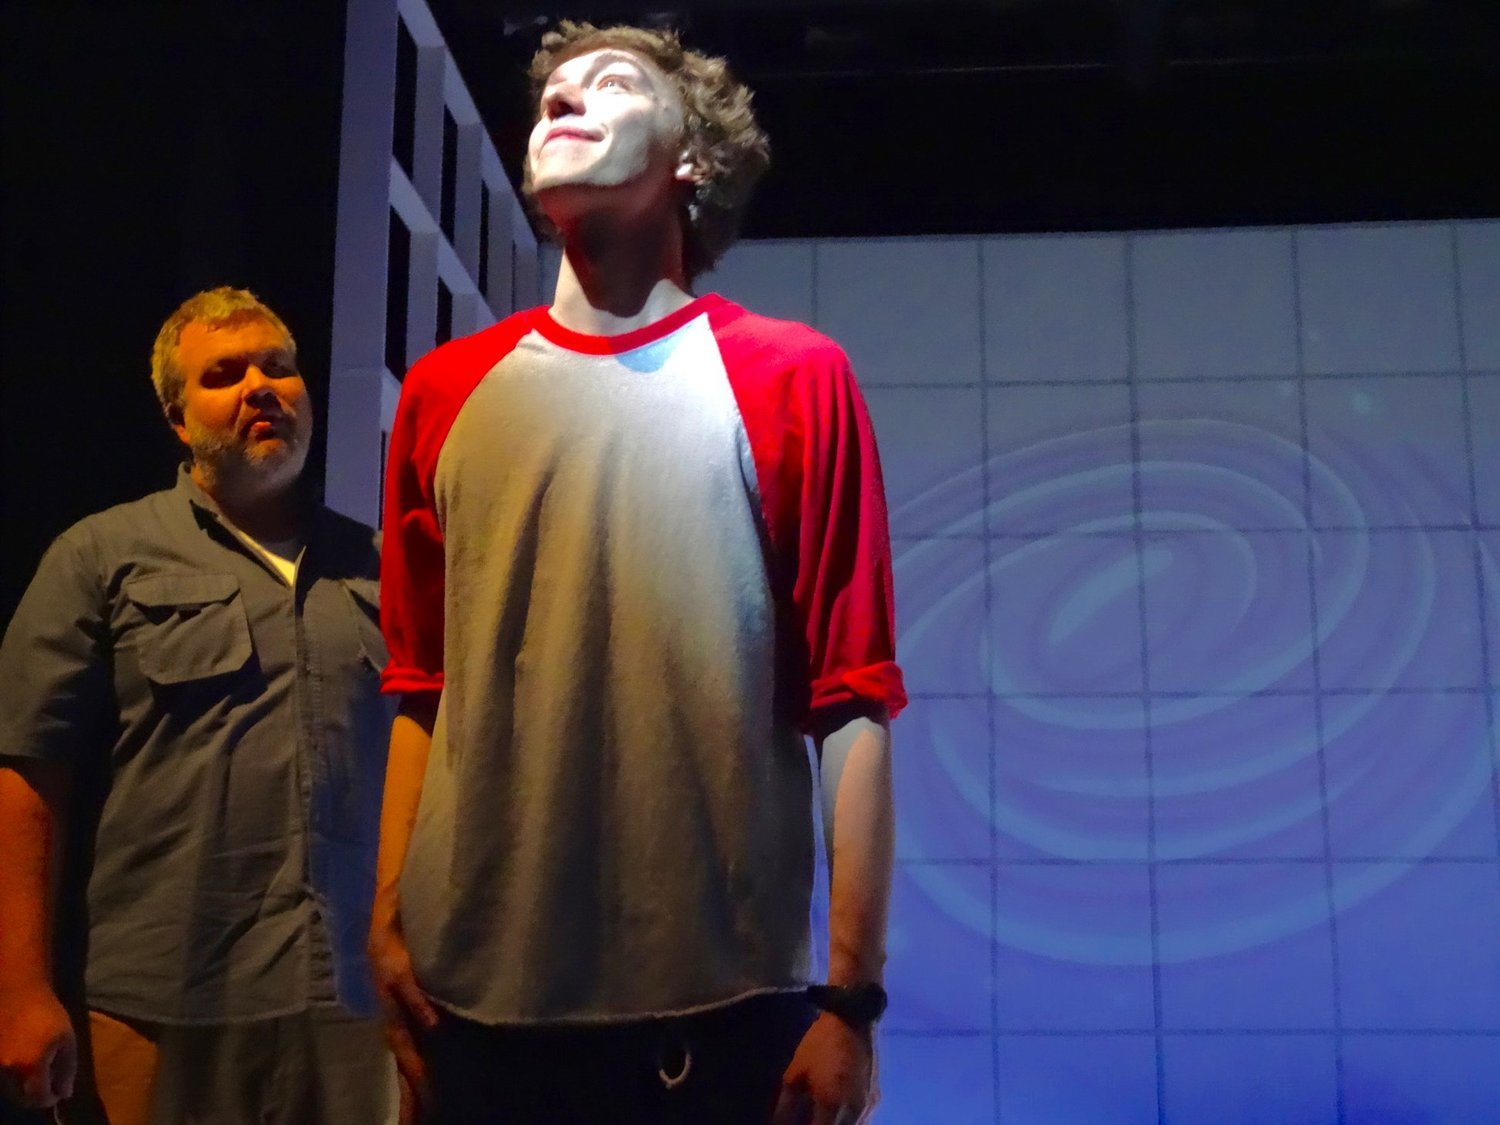 BWW Review: THE CURIOUS INCIDENT OF THE DOG IN THE NIGHT-TIME at Barn Players